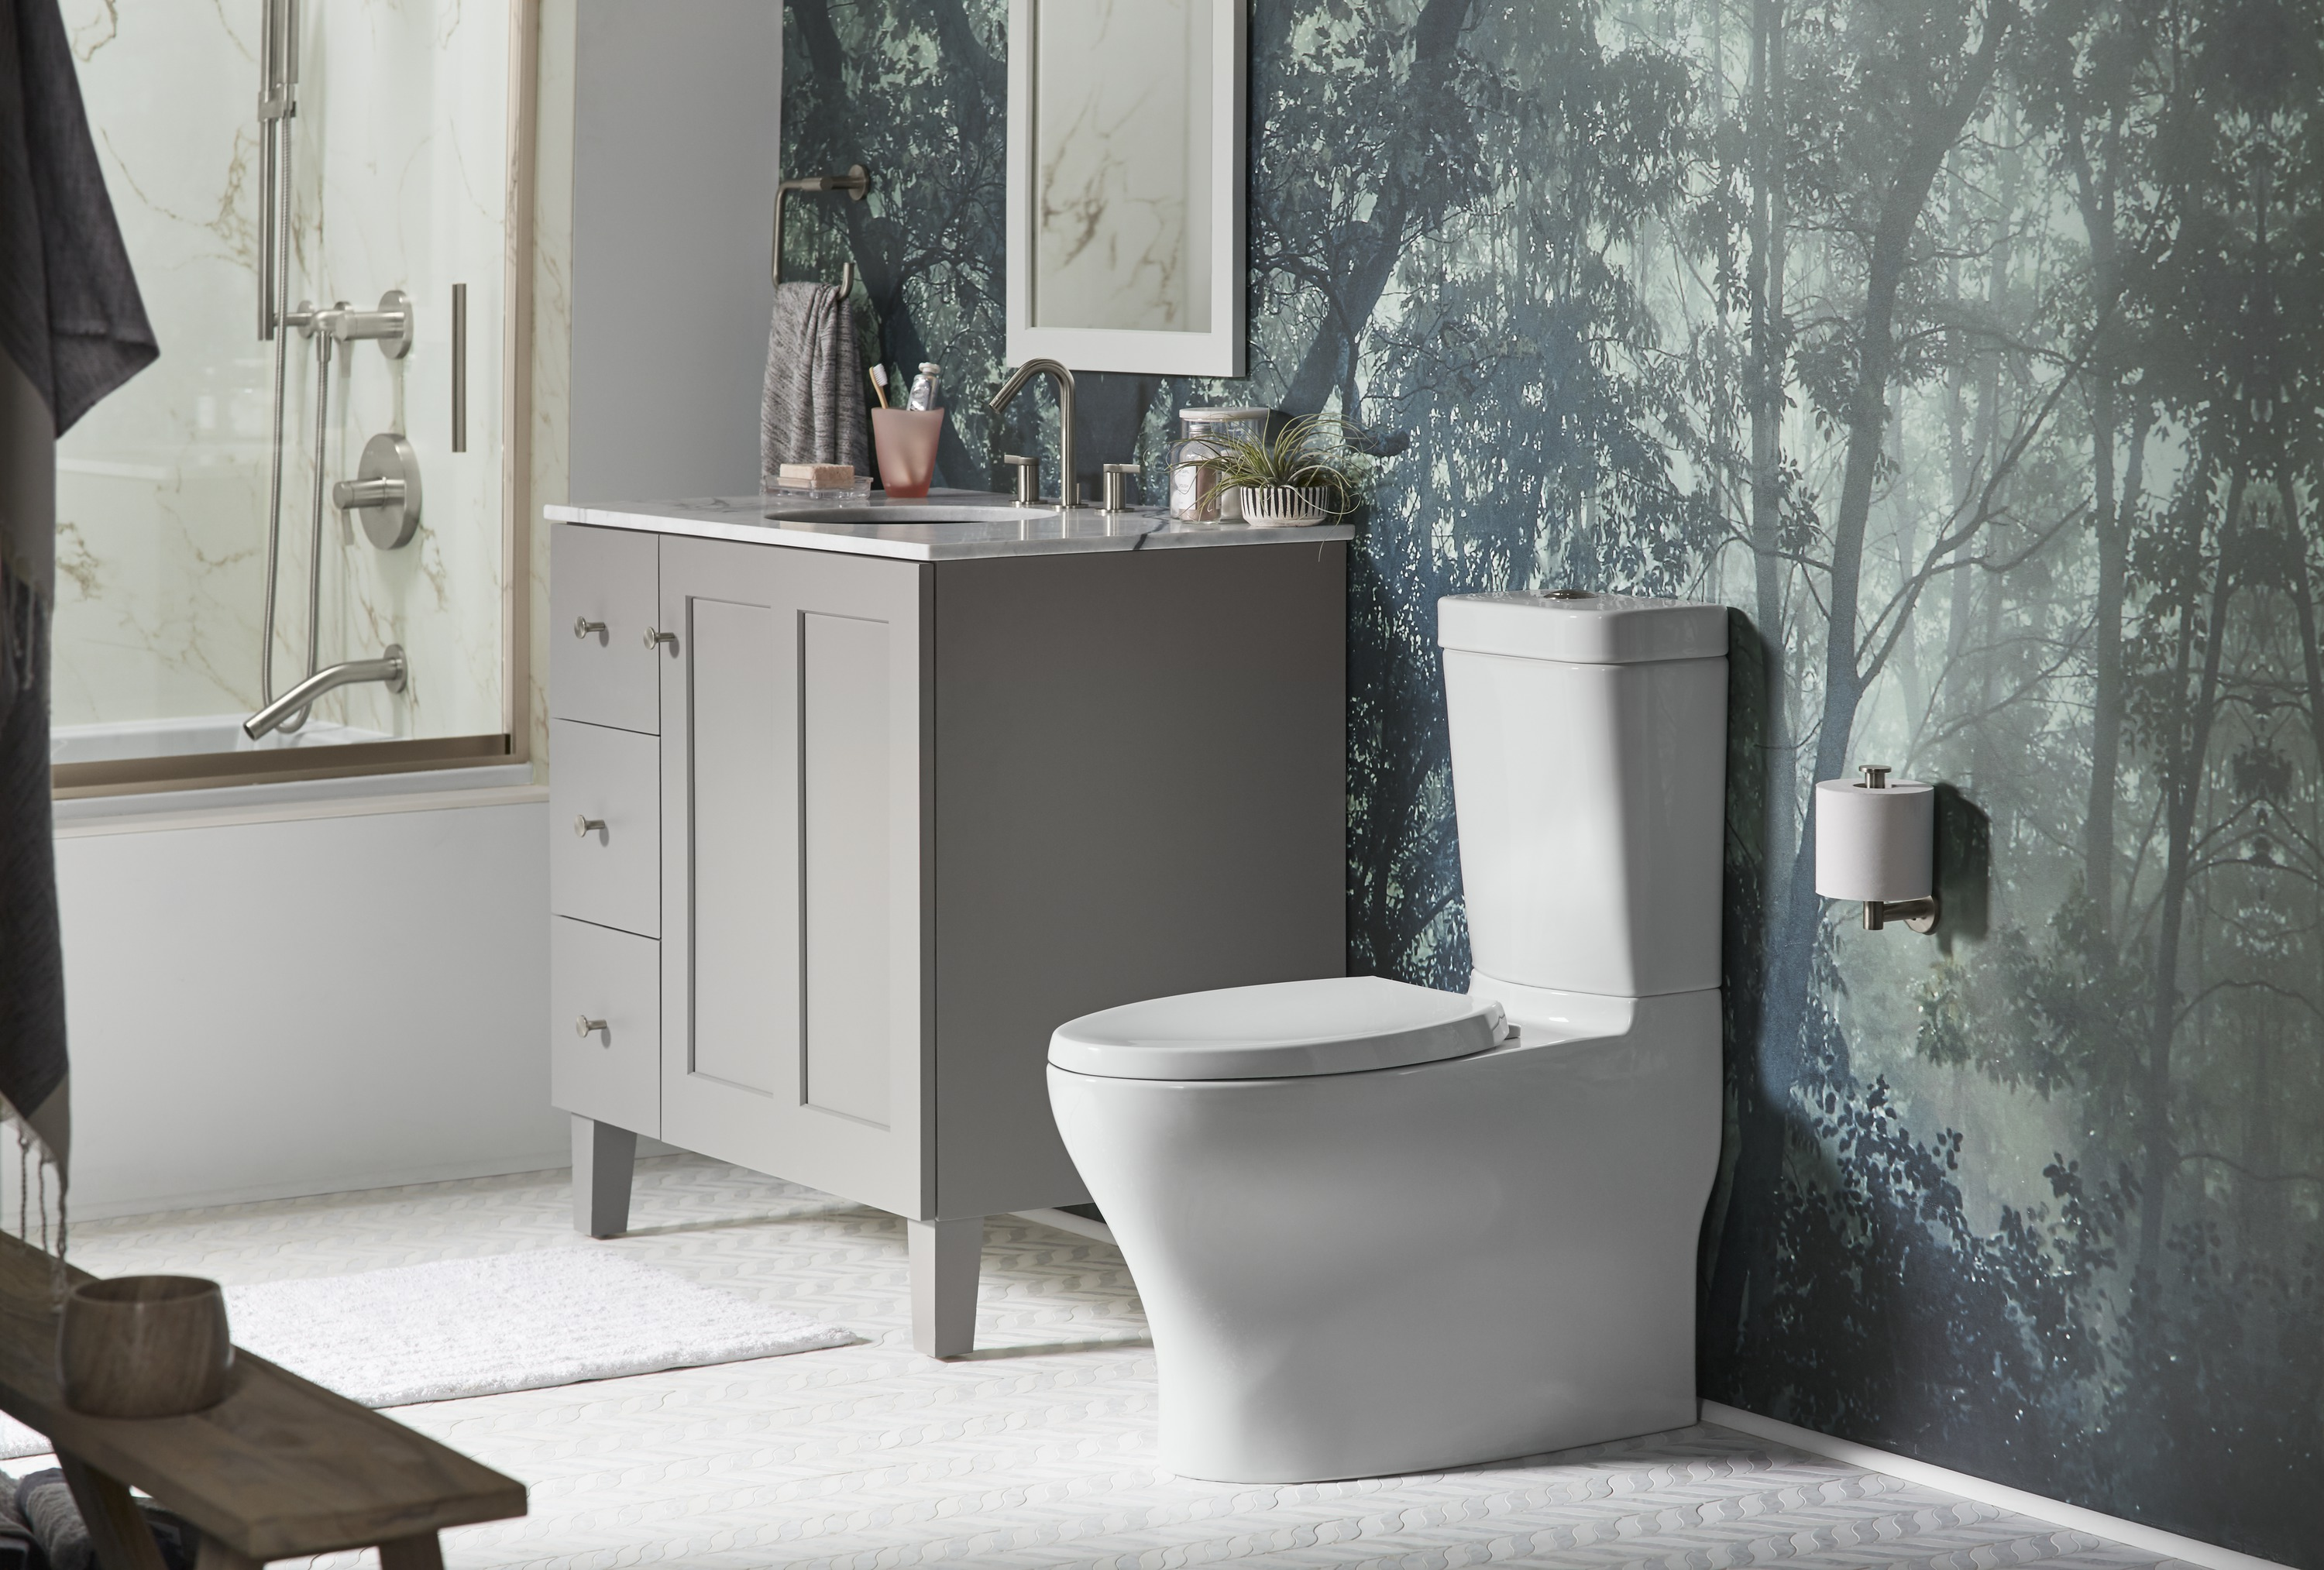 Persuade® Circ toilet     Reveal® toilet seat     Stillness® toilet tissue holder     A toilet with clean, organic design lines pairs easily with a simple Shaker-style vanity.